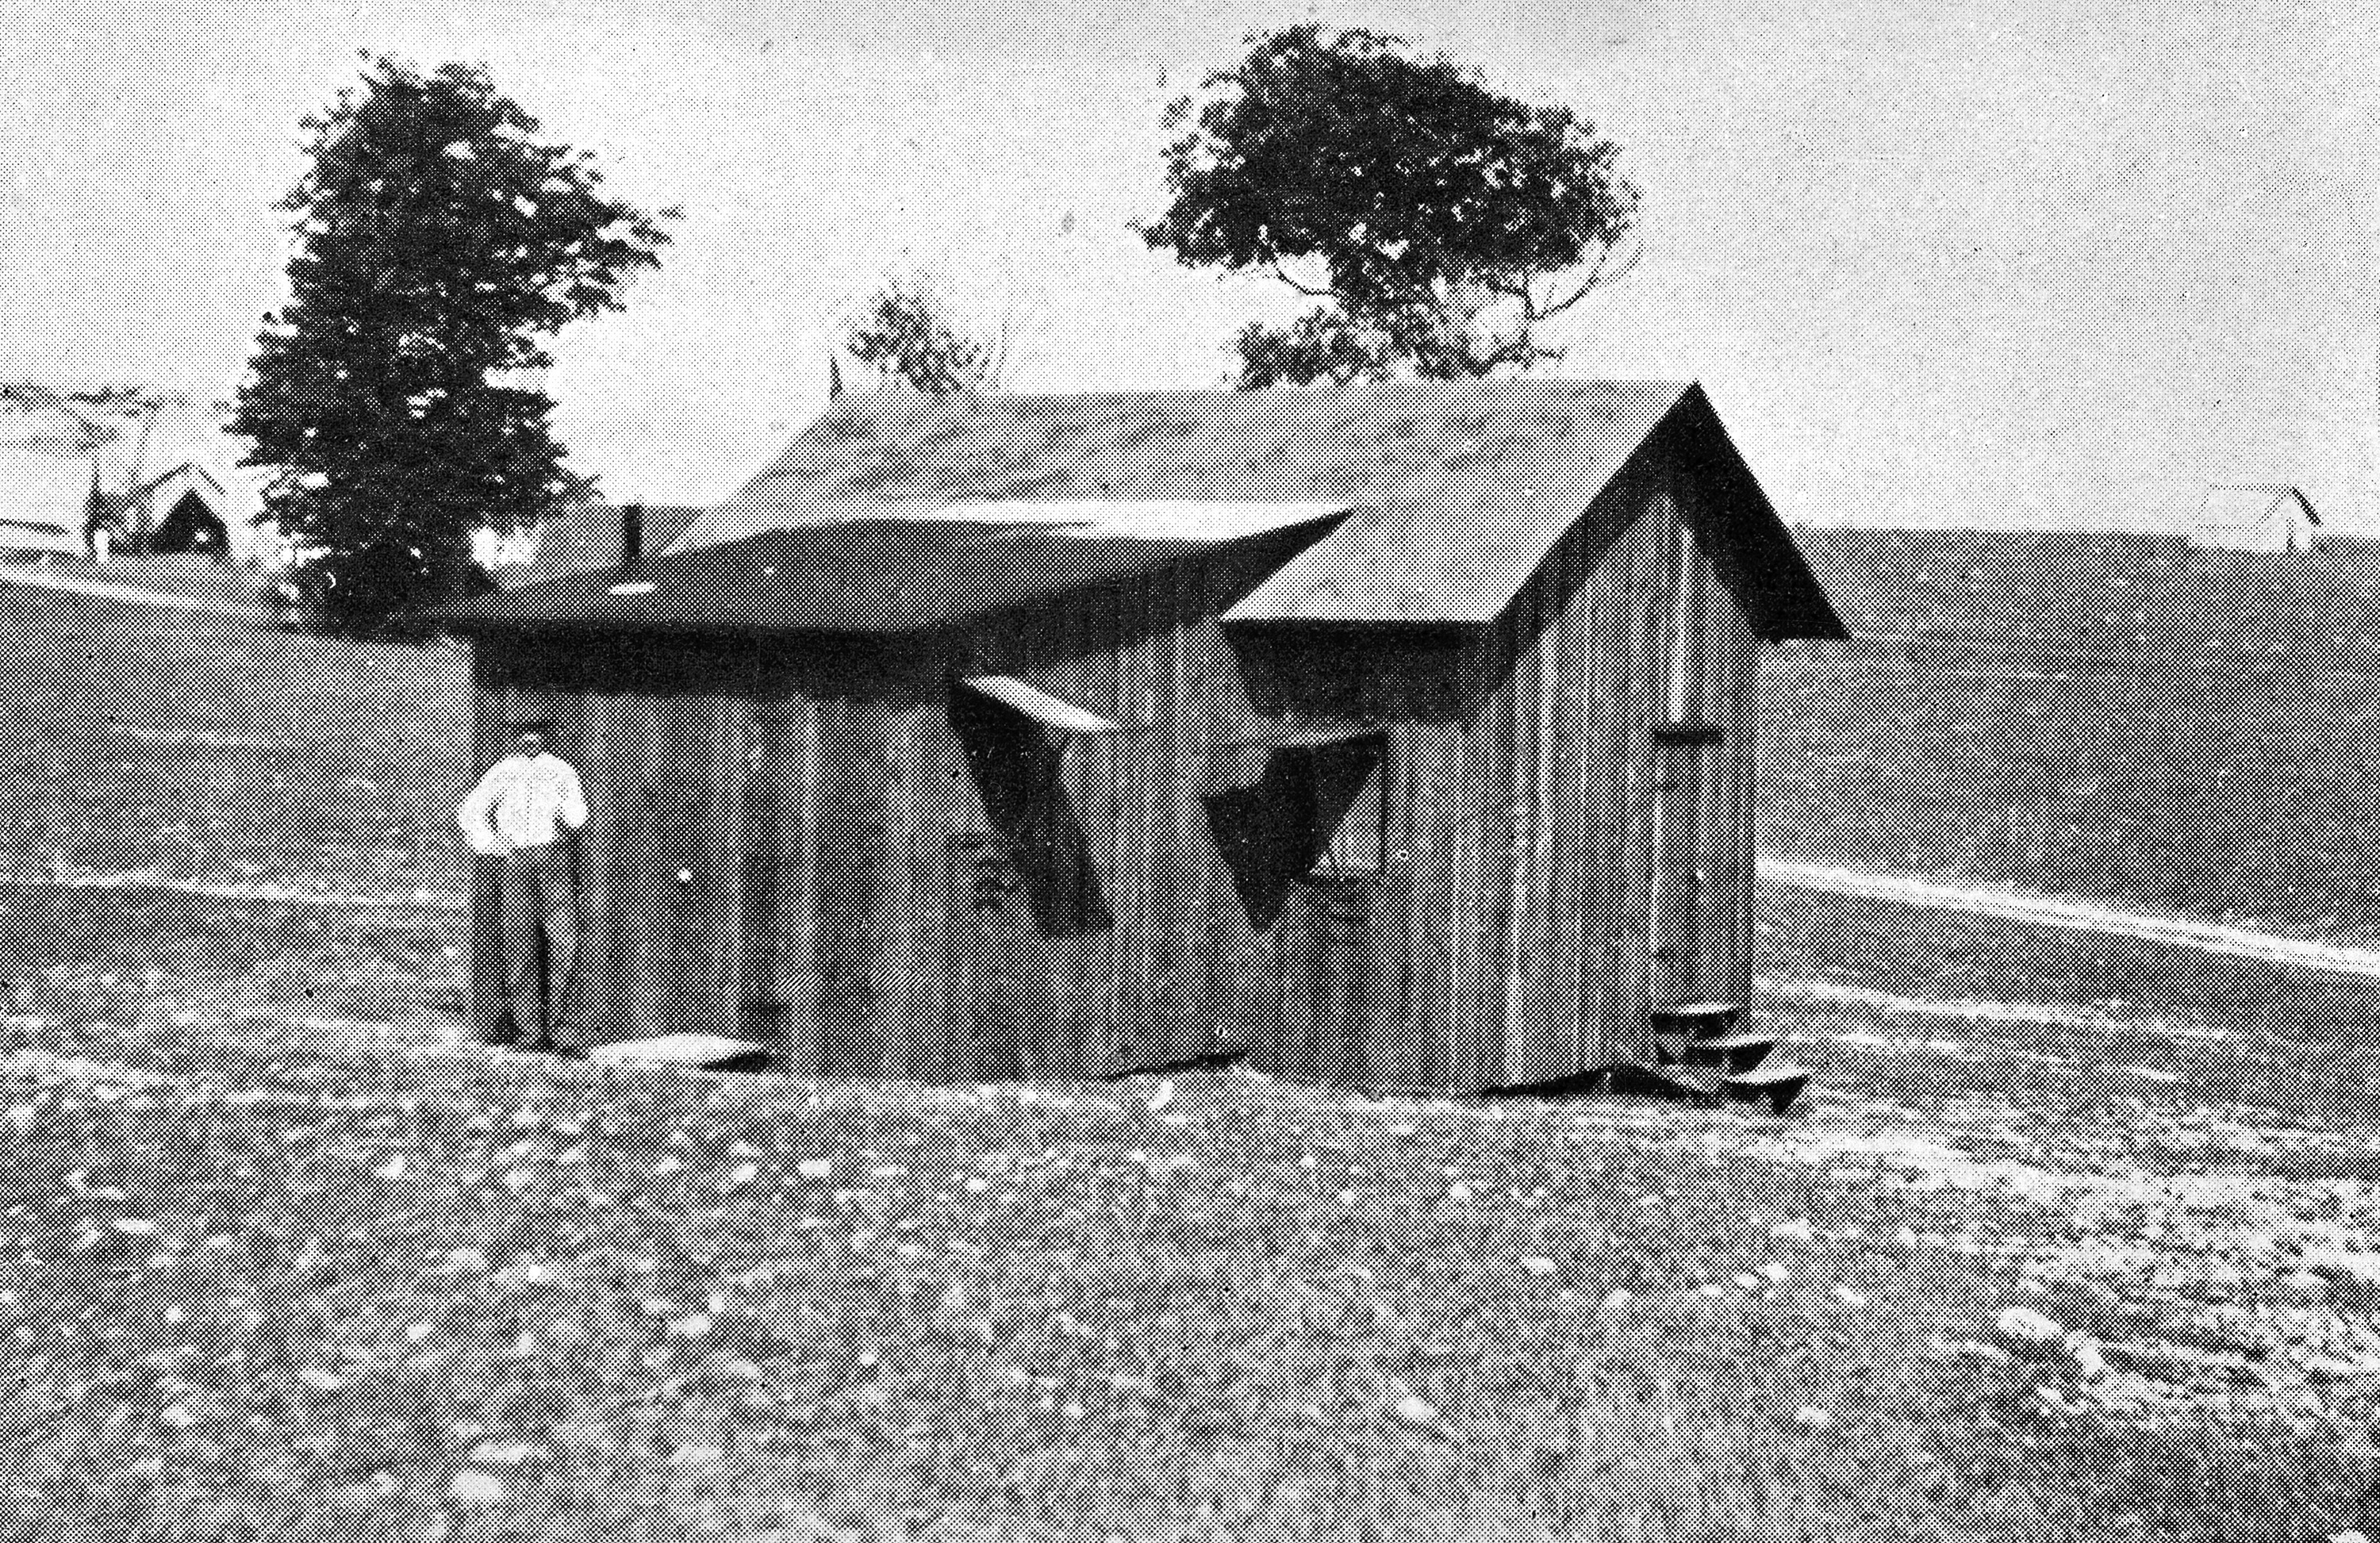 The historic photo shows a wooden hut of a building in a desolate setting with a man standing out front.